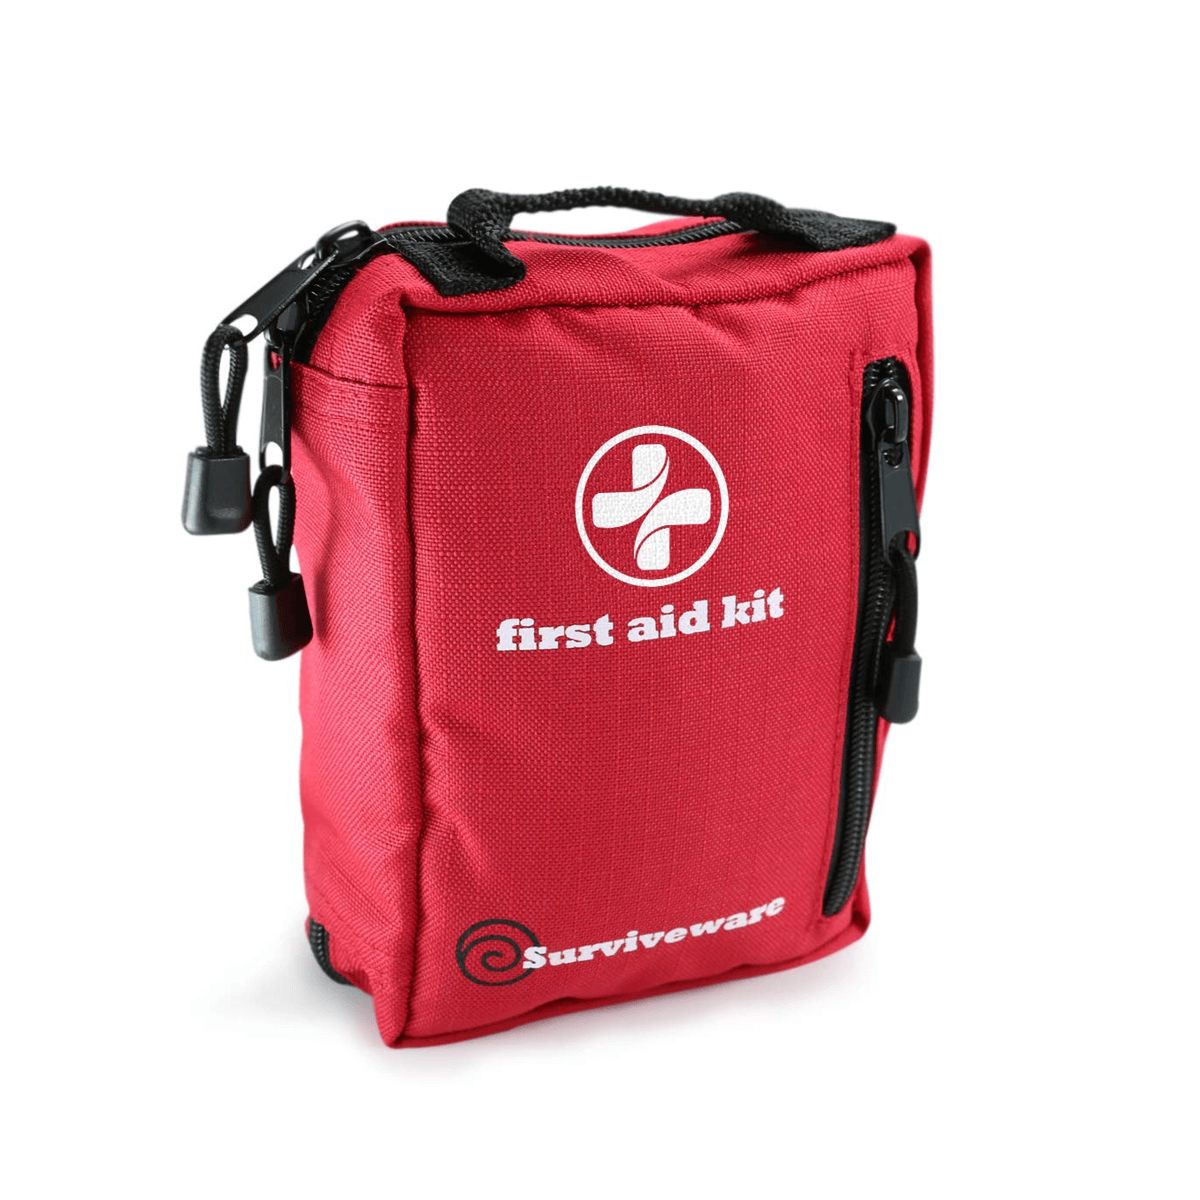 Surviveware Small First Aid Kit (2)